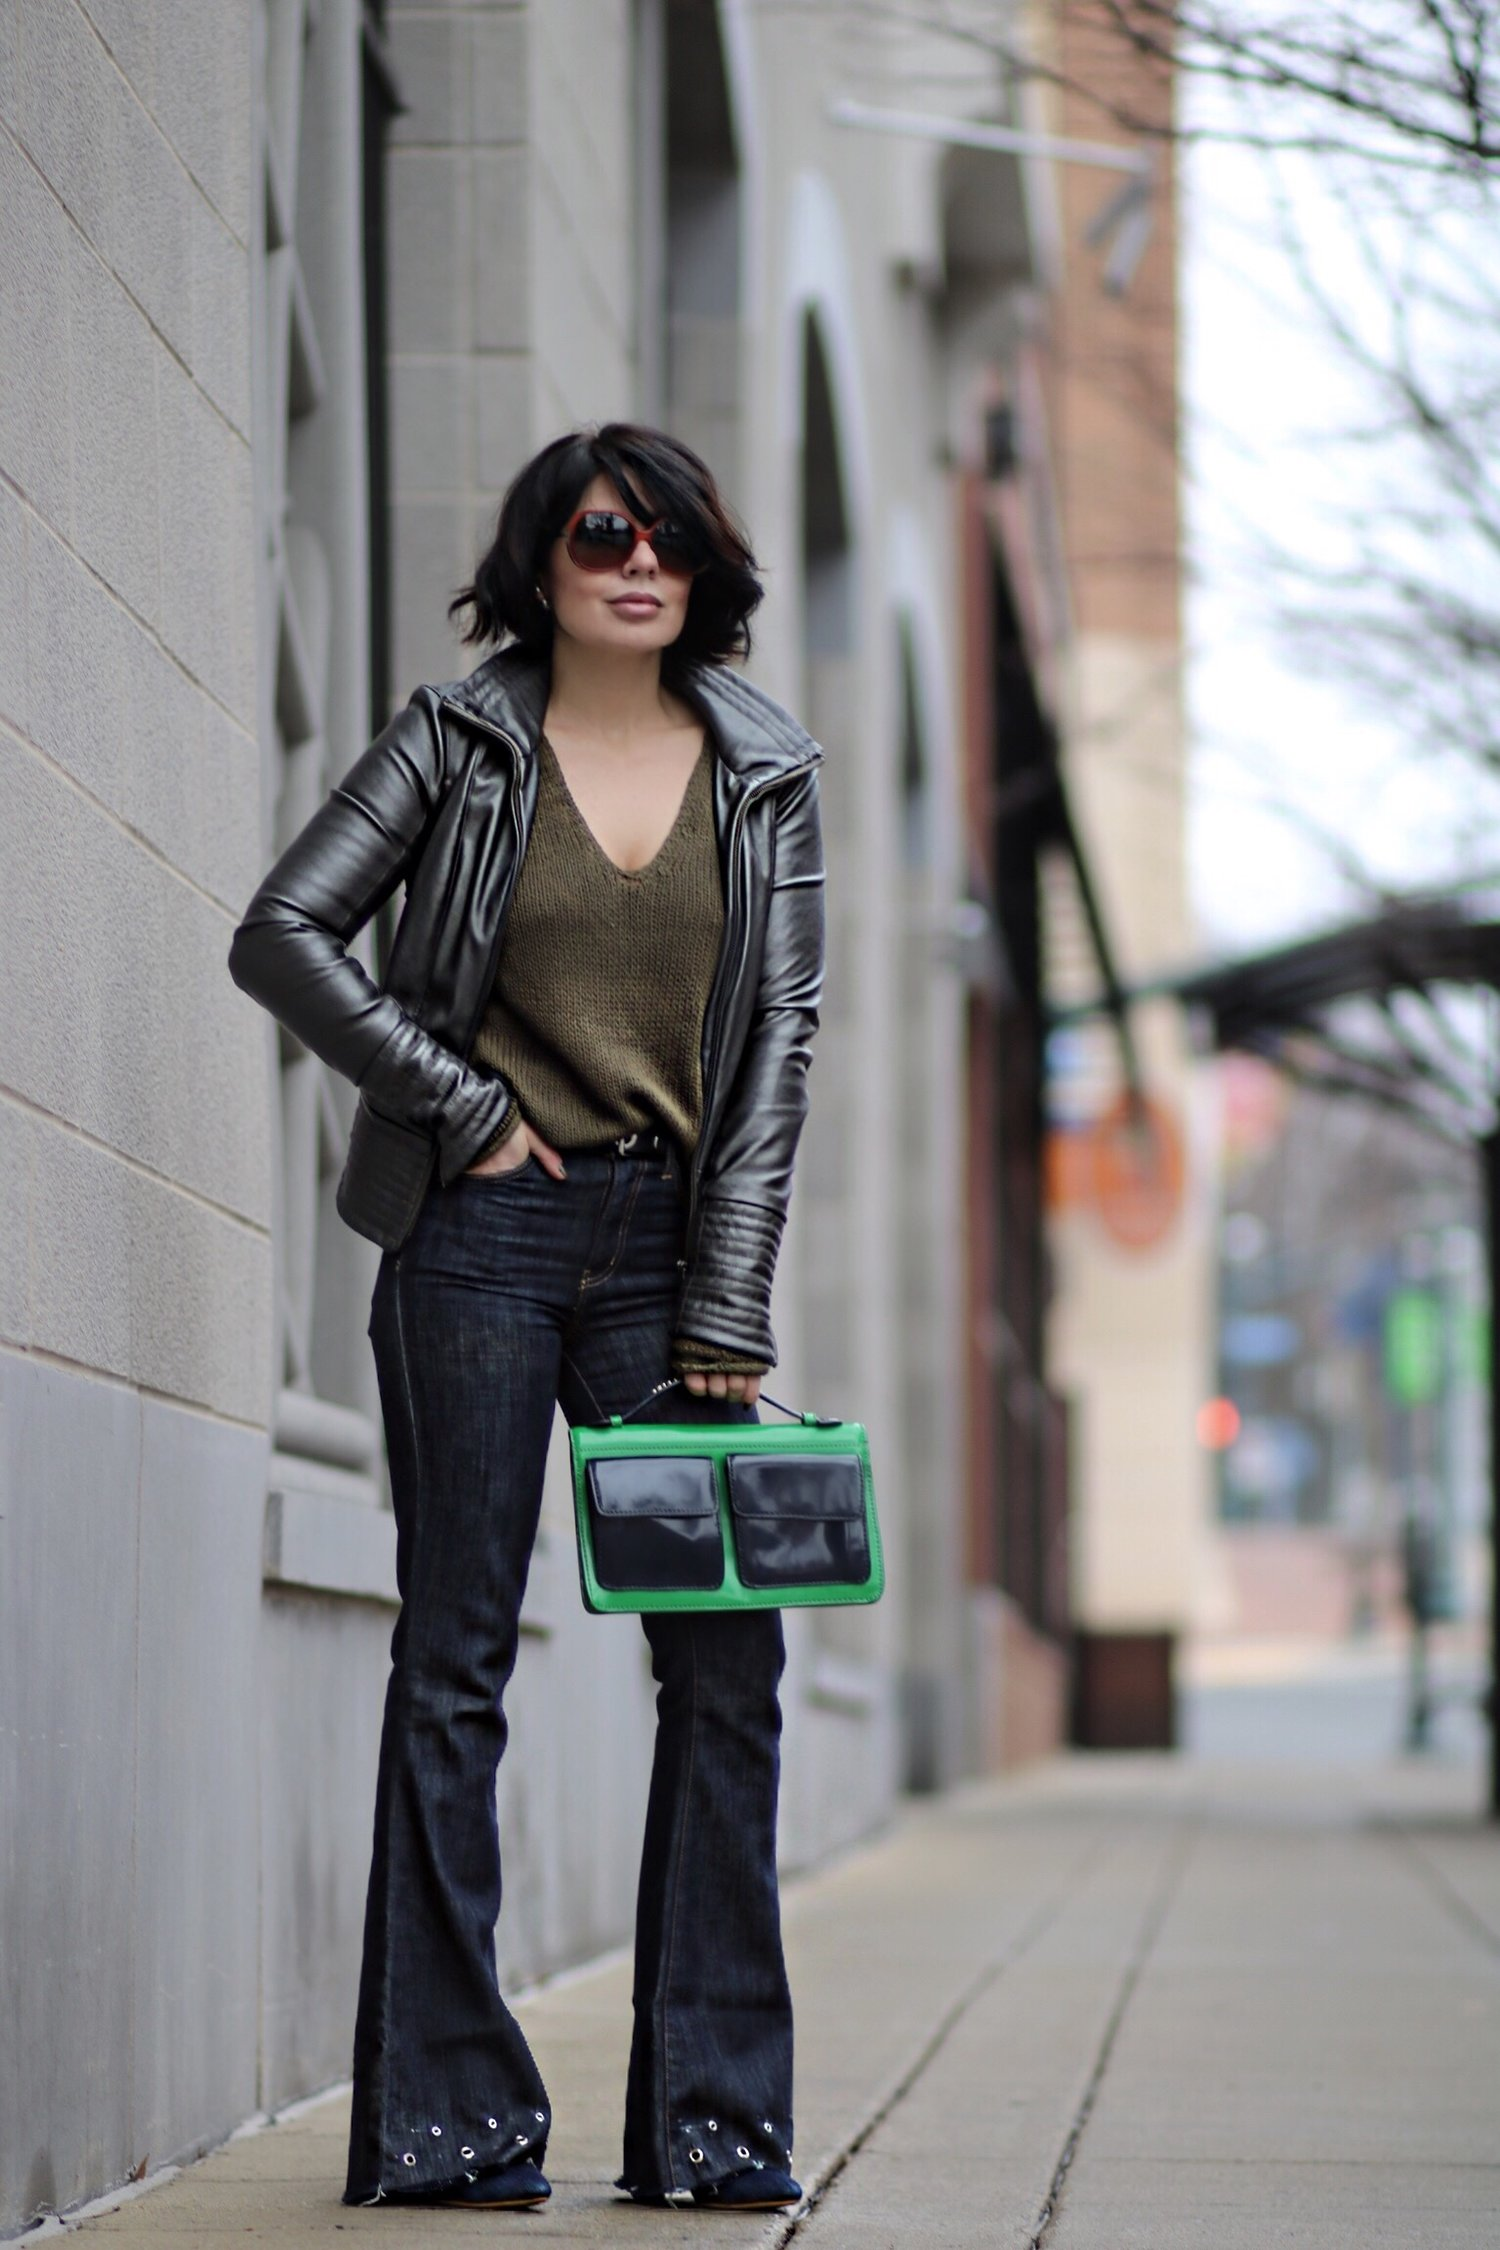 Style a leather jacket with grommet denim